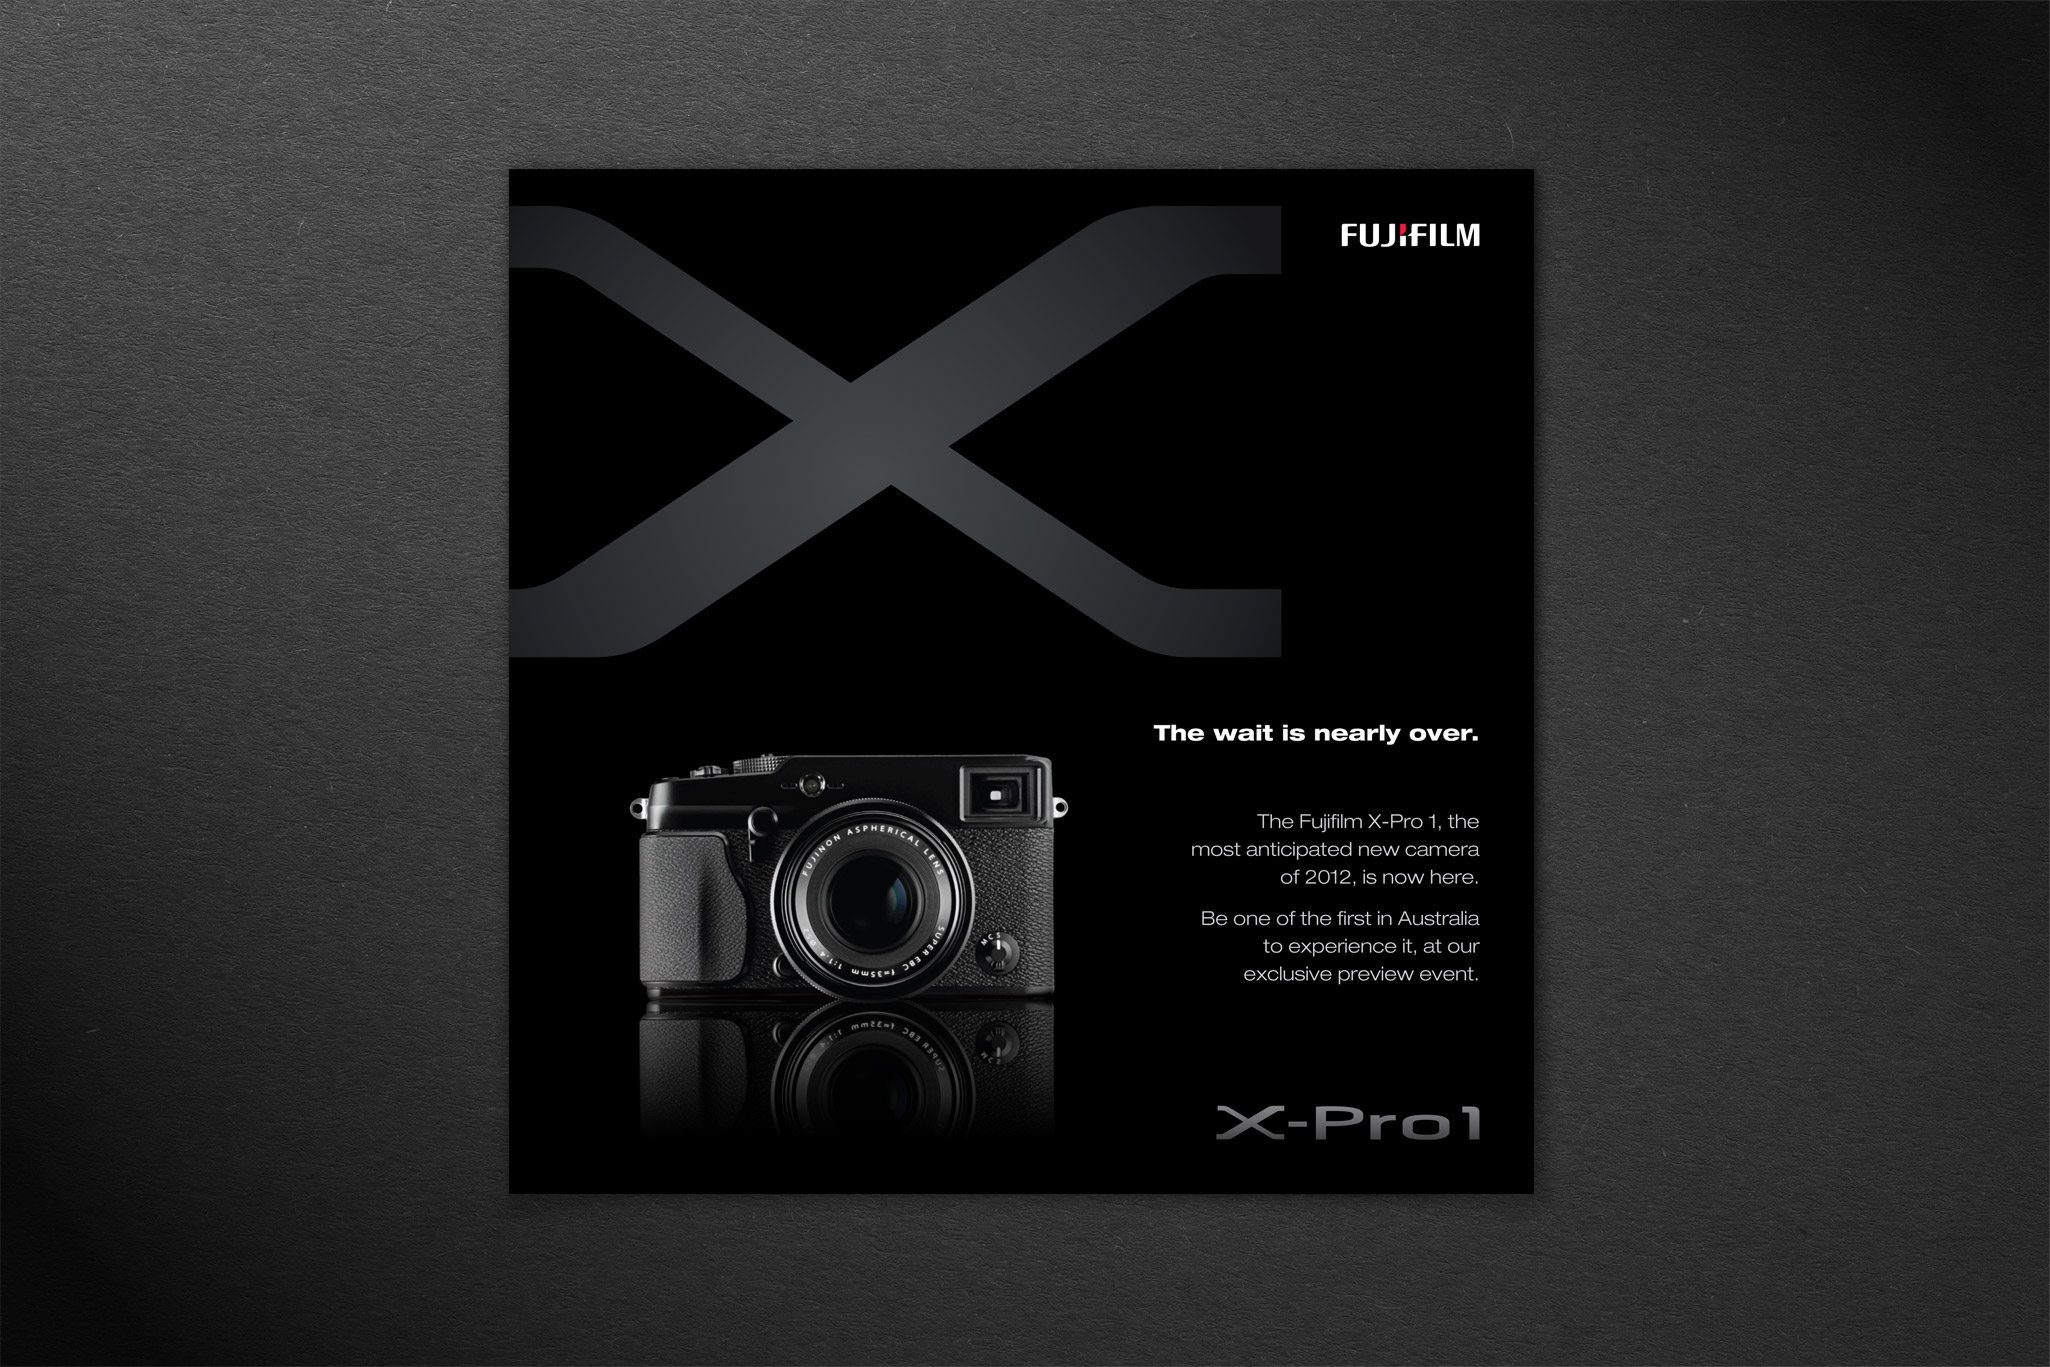 fujifilm x pro1 launch event invitation design niche marketing group